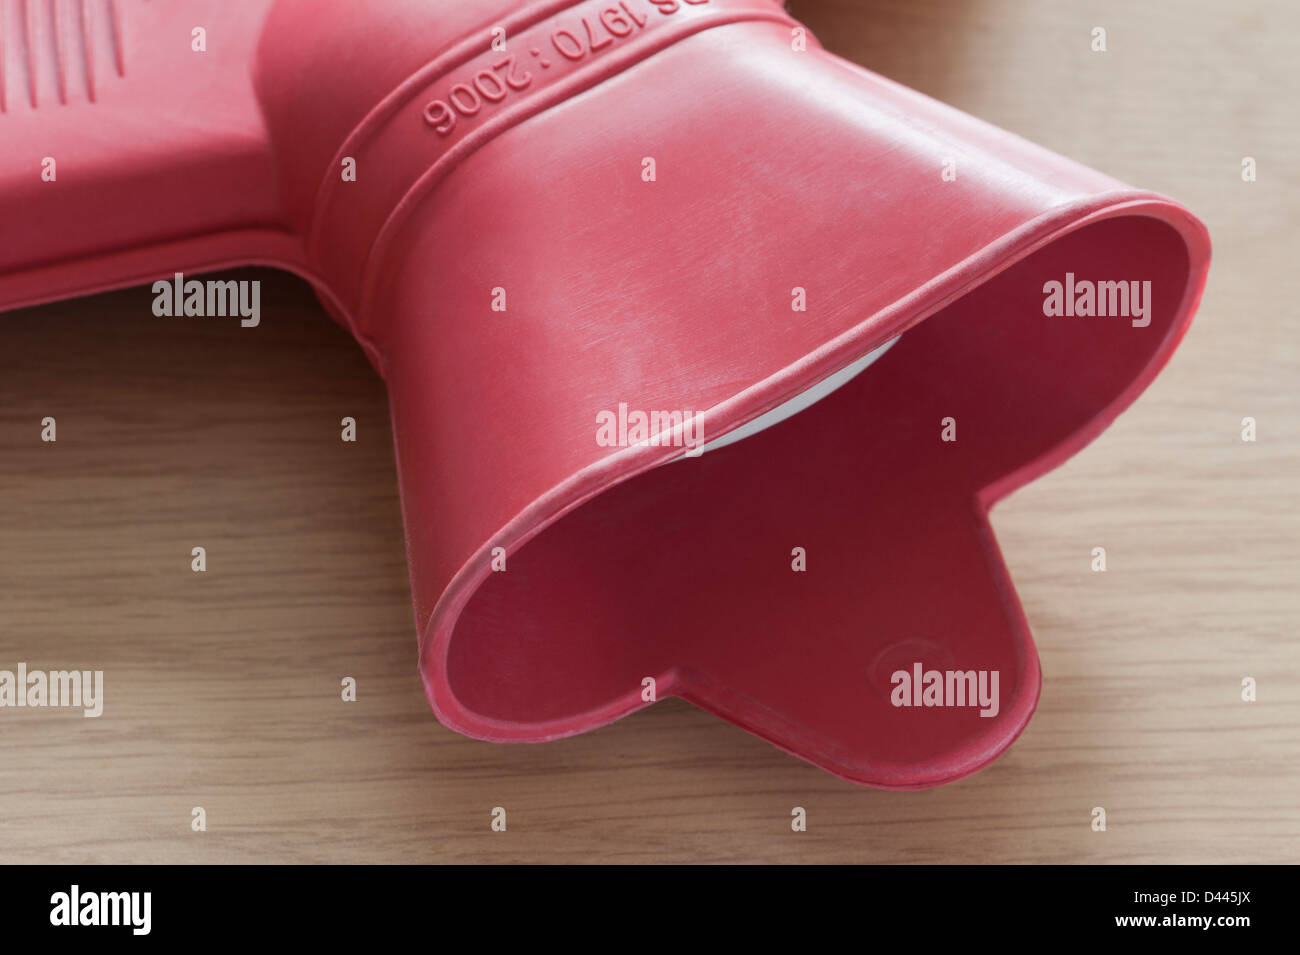 Pink rubber hot water bottle close up Stock Photo